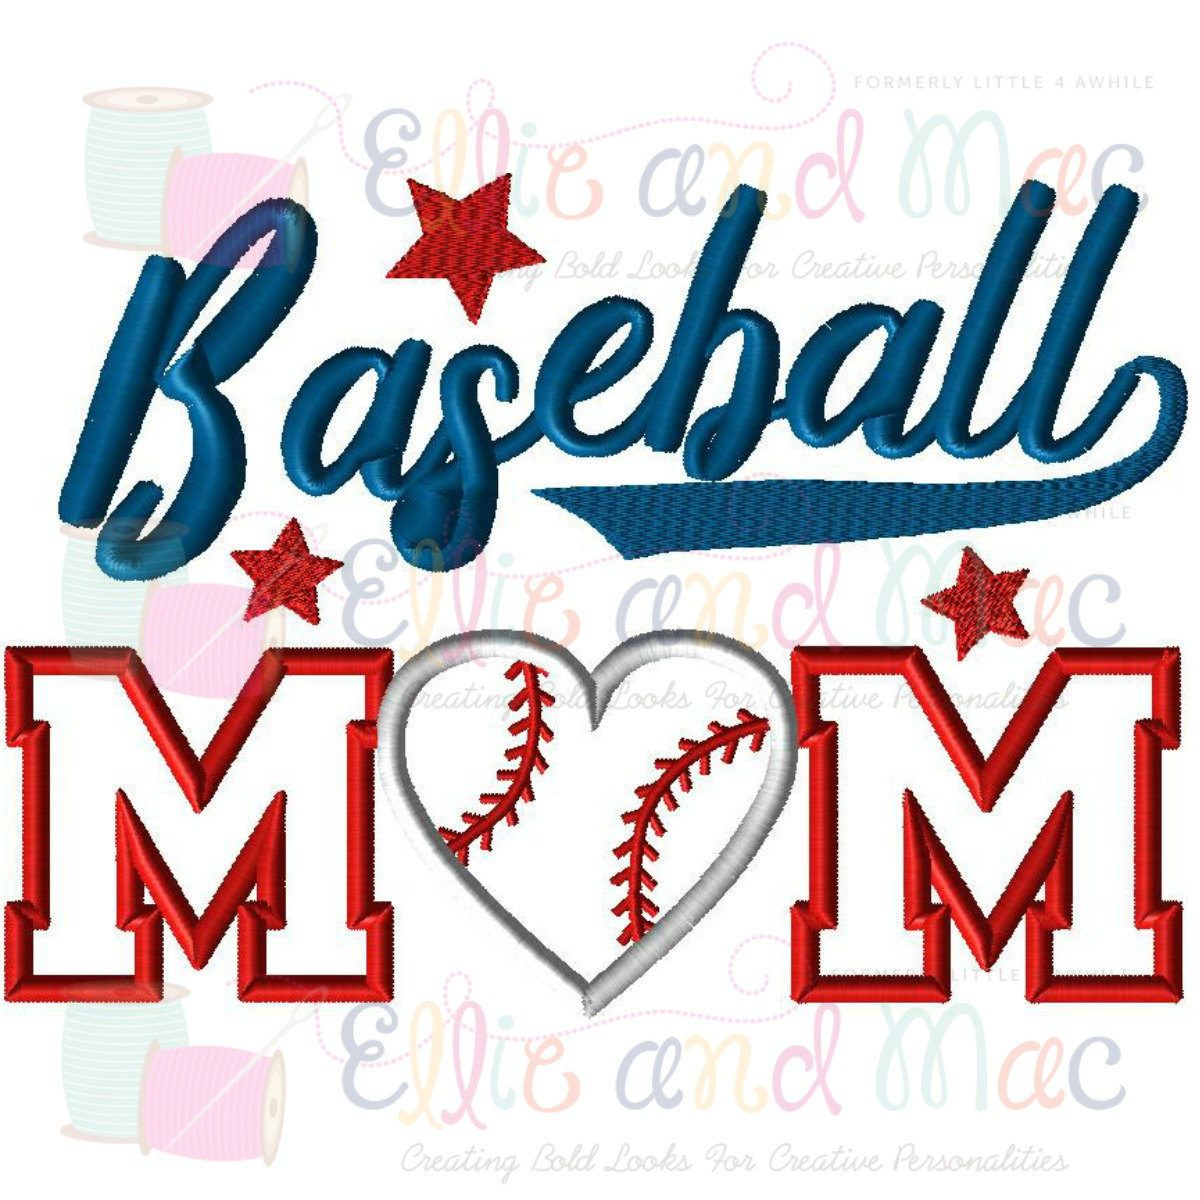 Baseball Design, Baseball Embroidery Design, Baseball Mom Embroidery Design, Mom Applique design, Baseball Applique, Sports Embroidery by EandMEmbroidery on Etsy